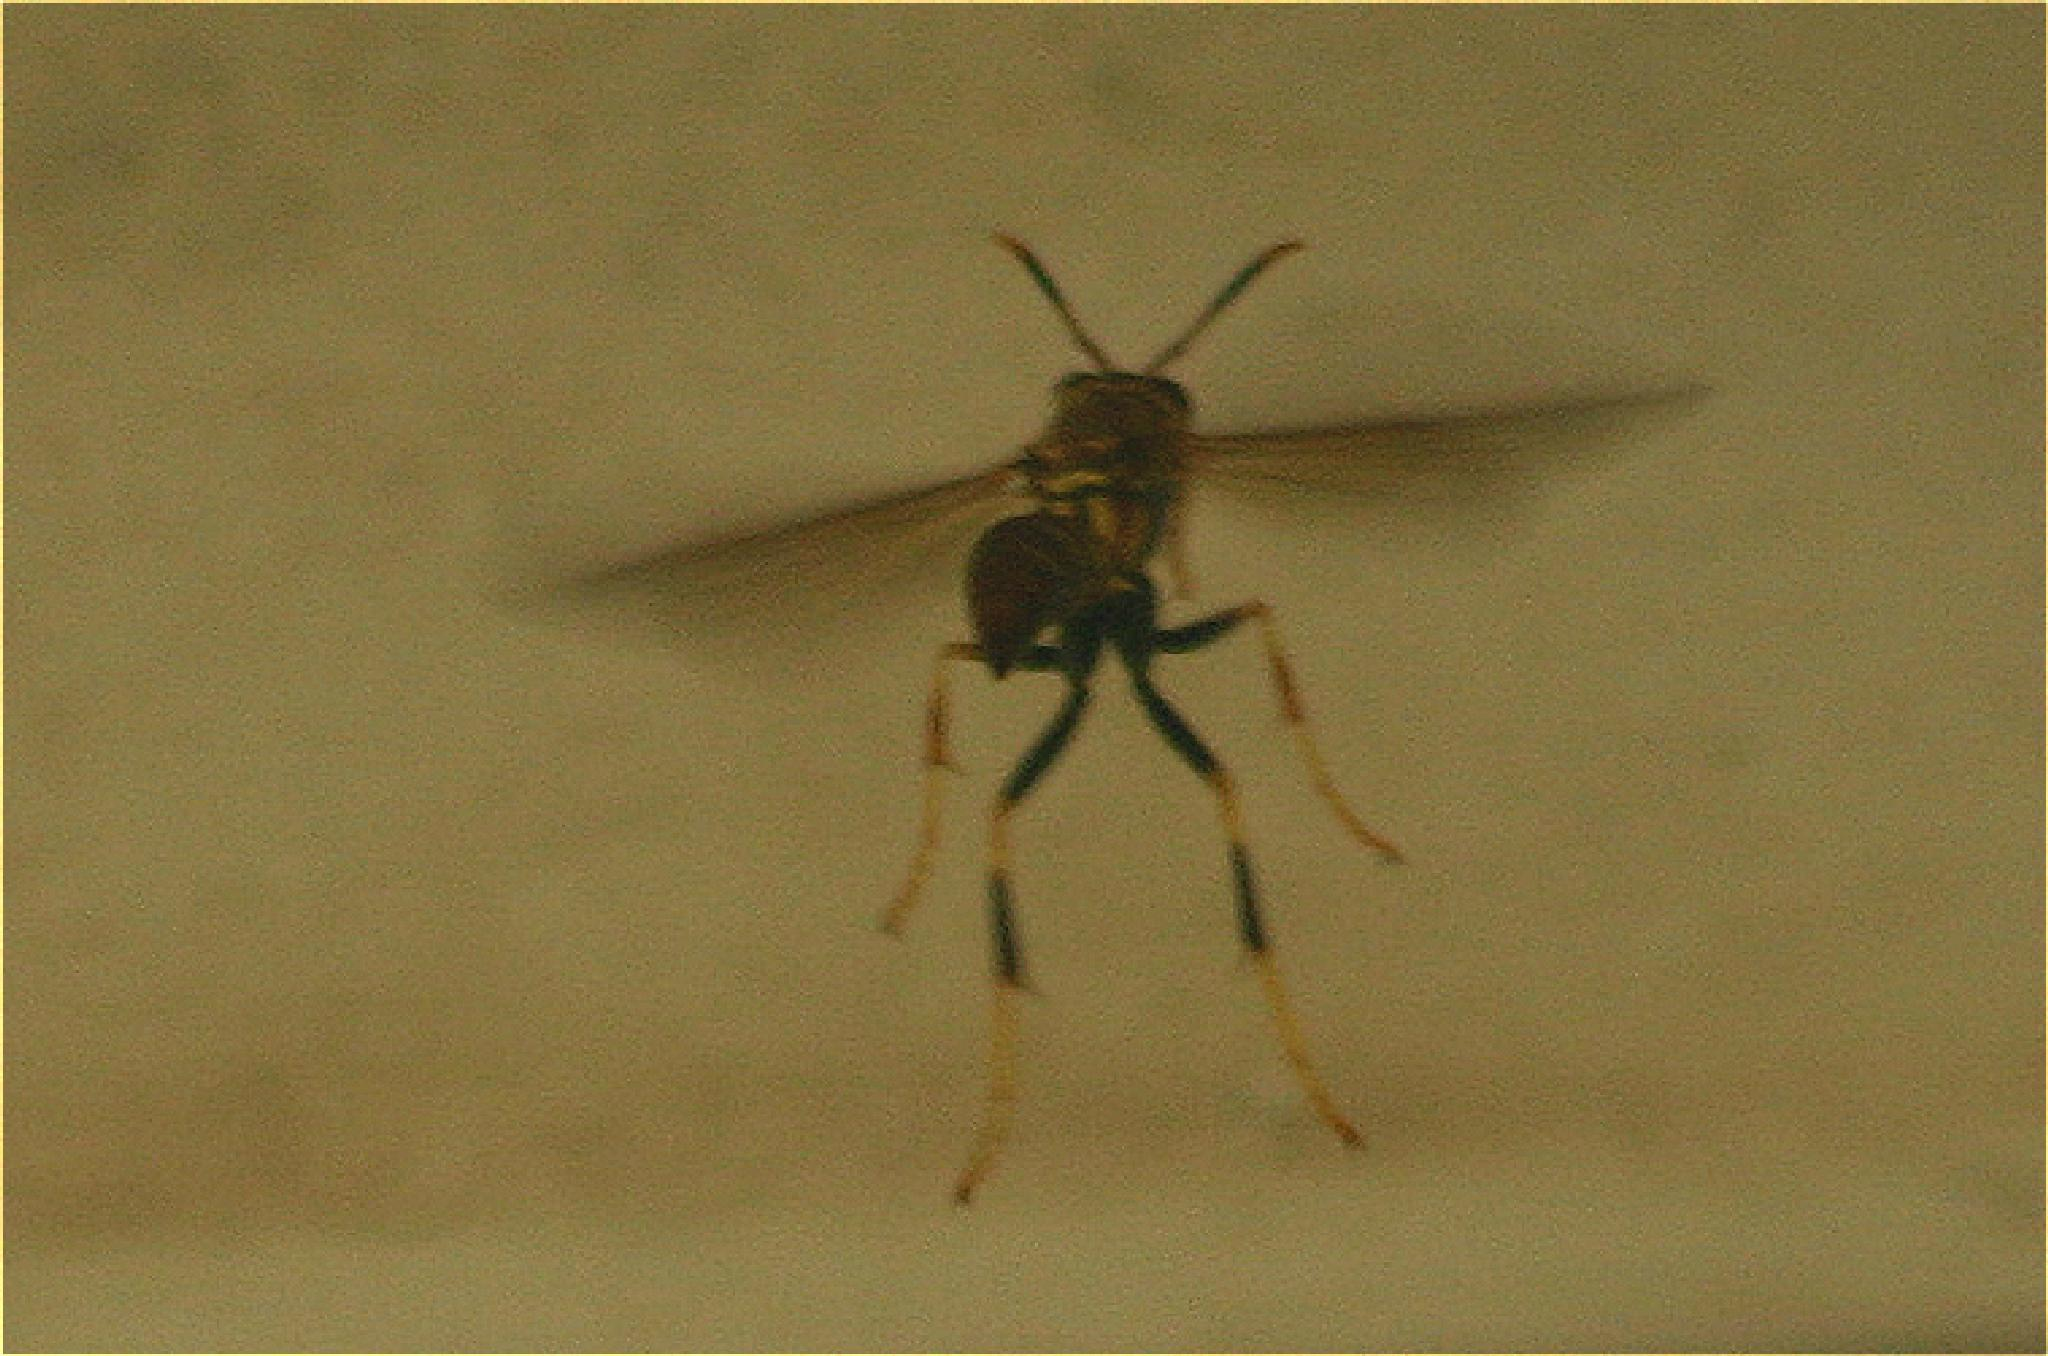 WASP by bechcomber444